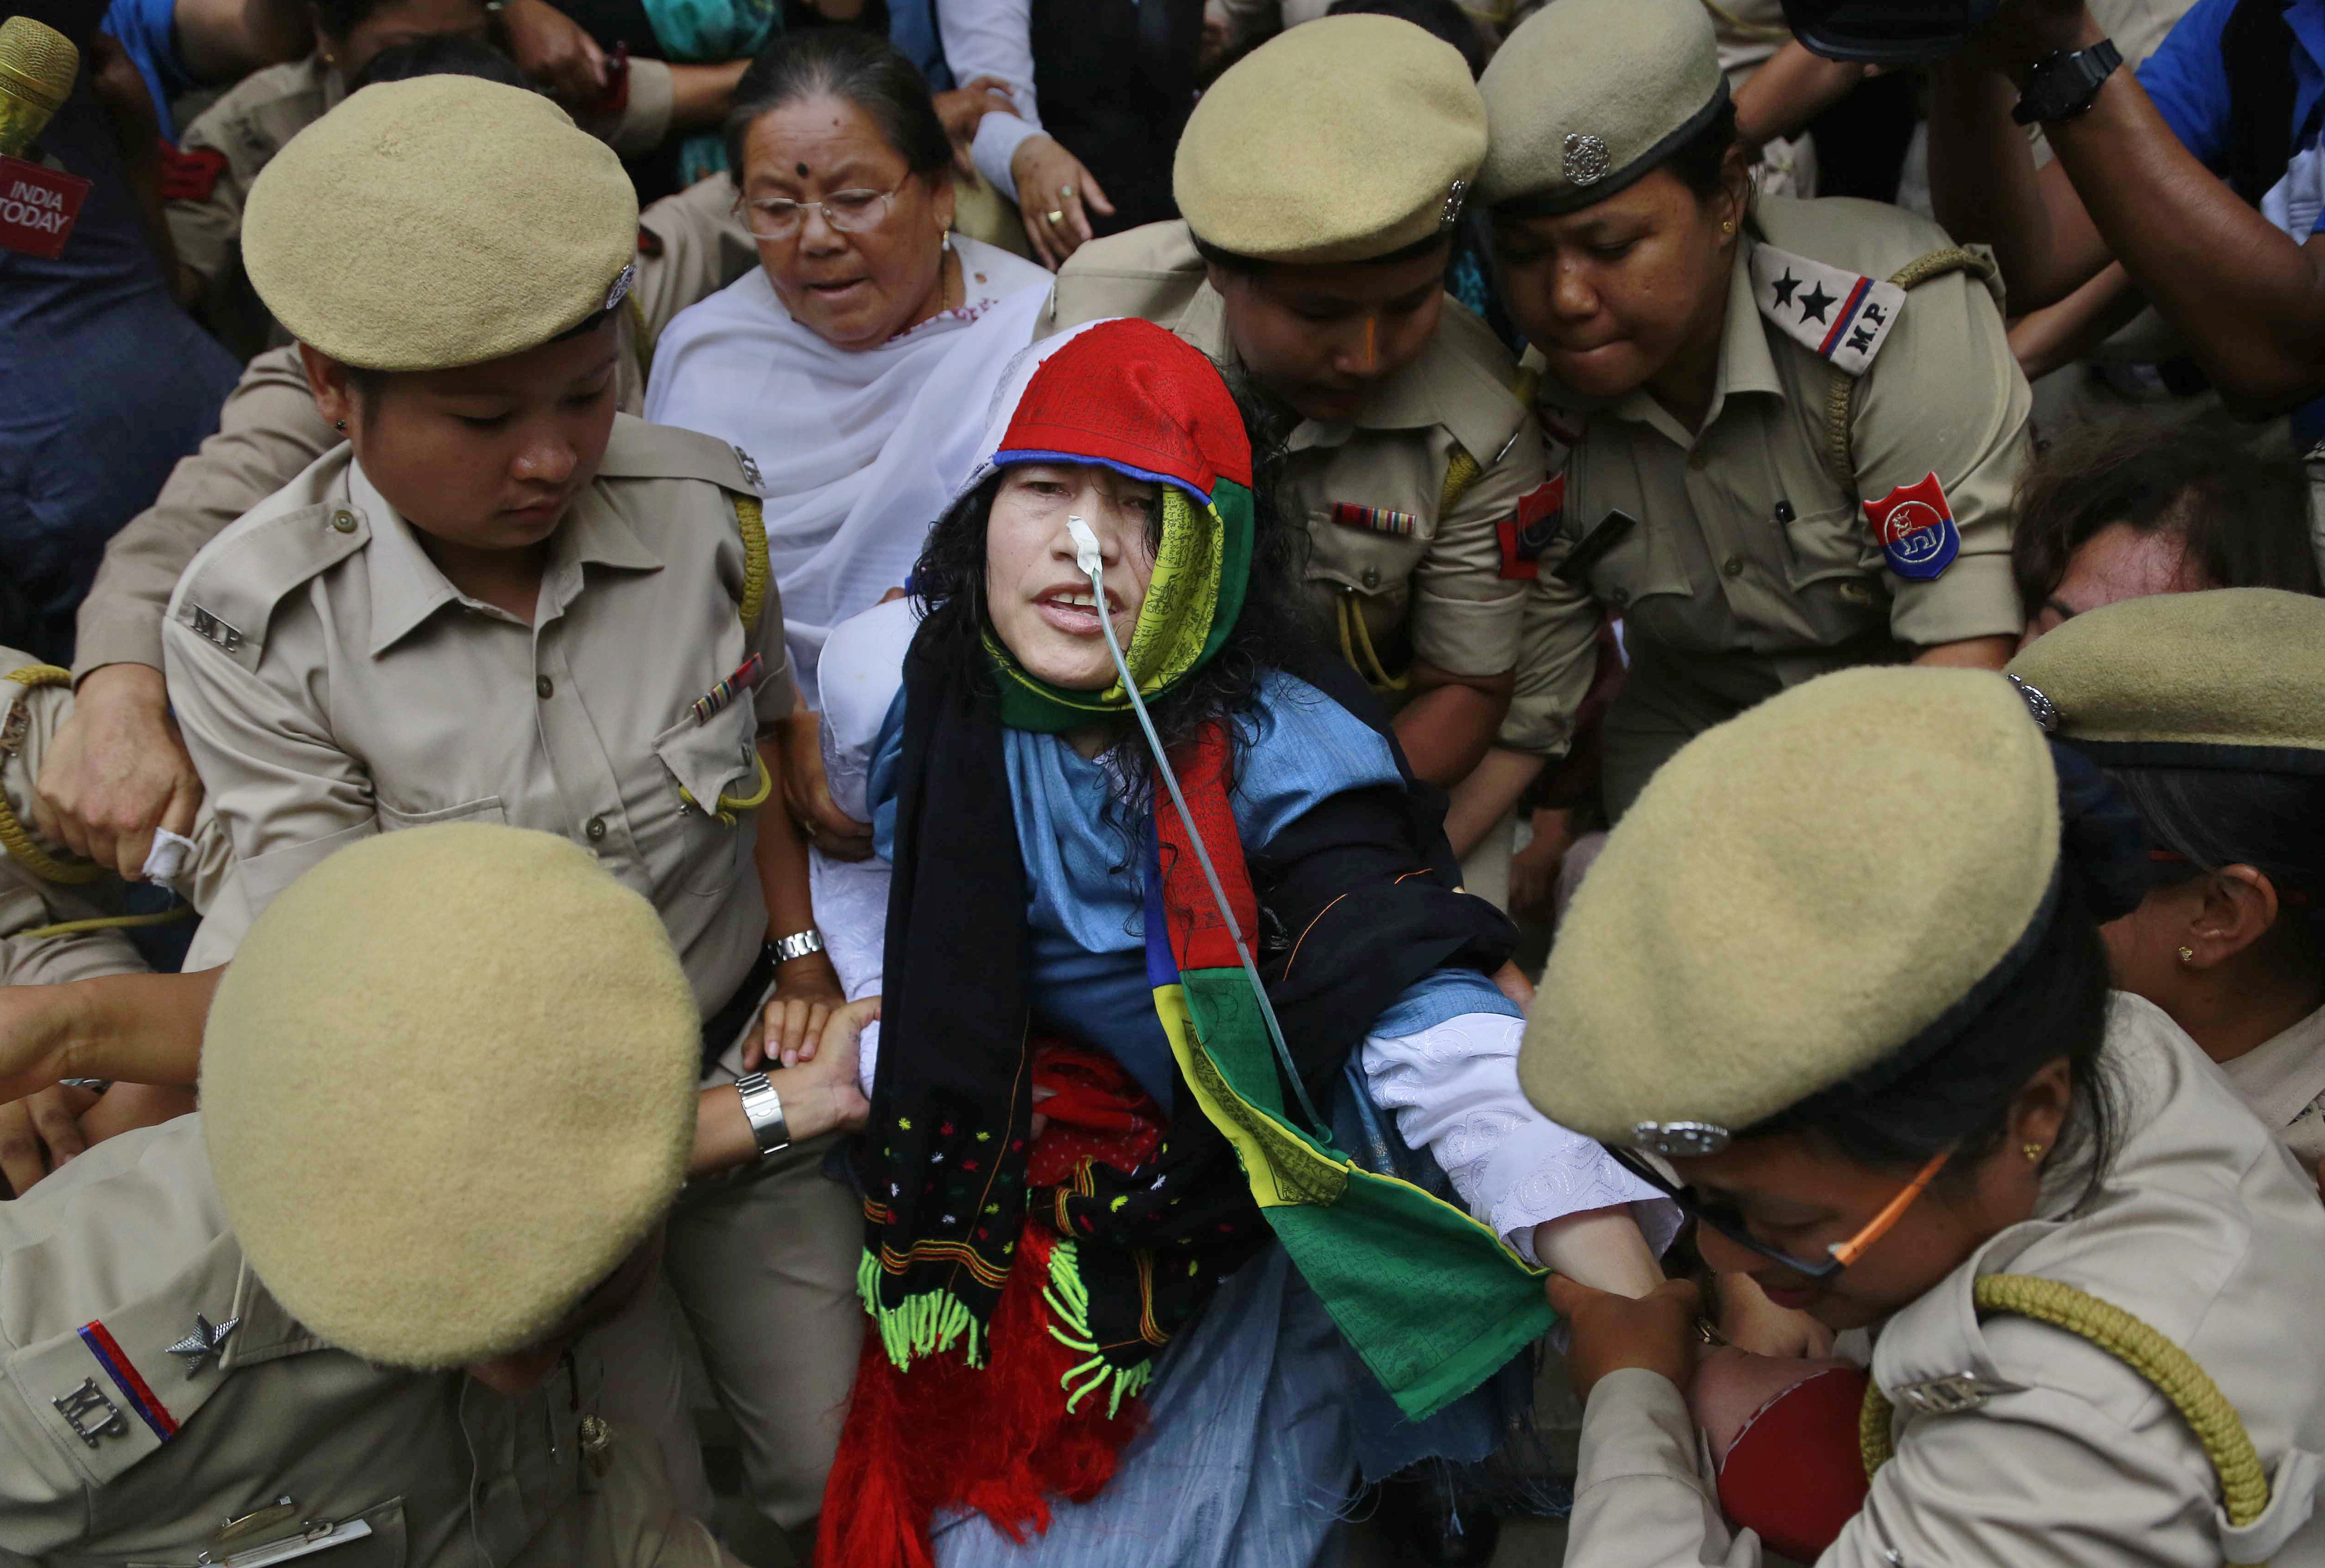 Activist Irom Sharmila is taken back to a hospital after a court appearance in Imphal, in the north-eastern state of Manipur, India, Aug. 9, 2016.